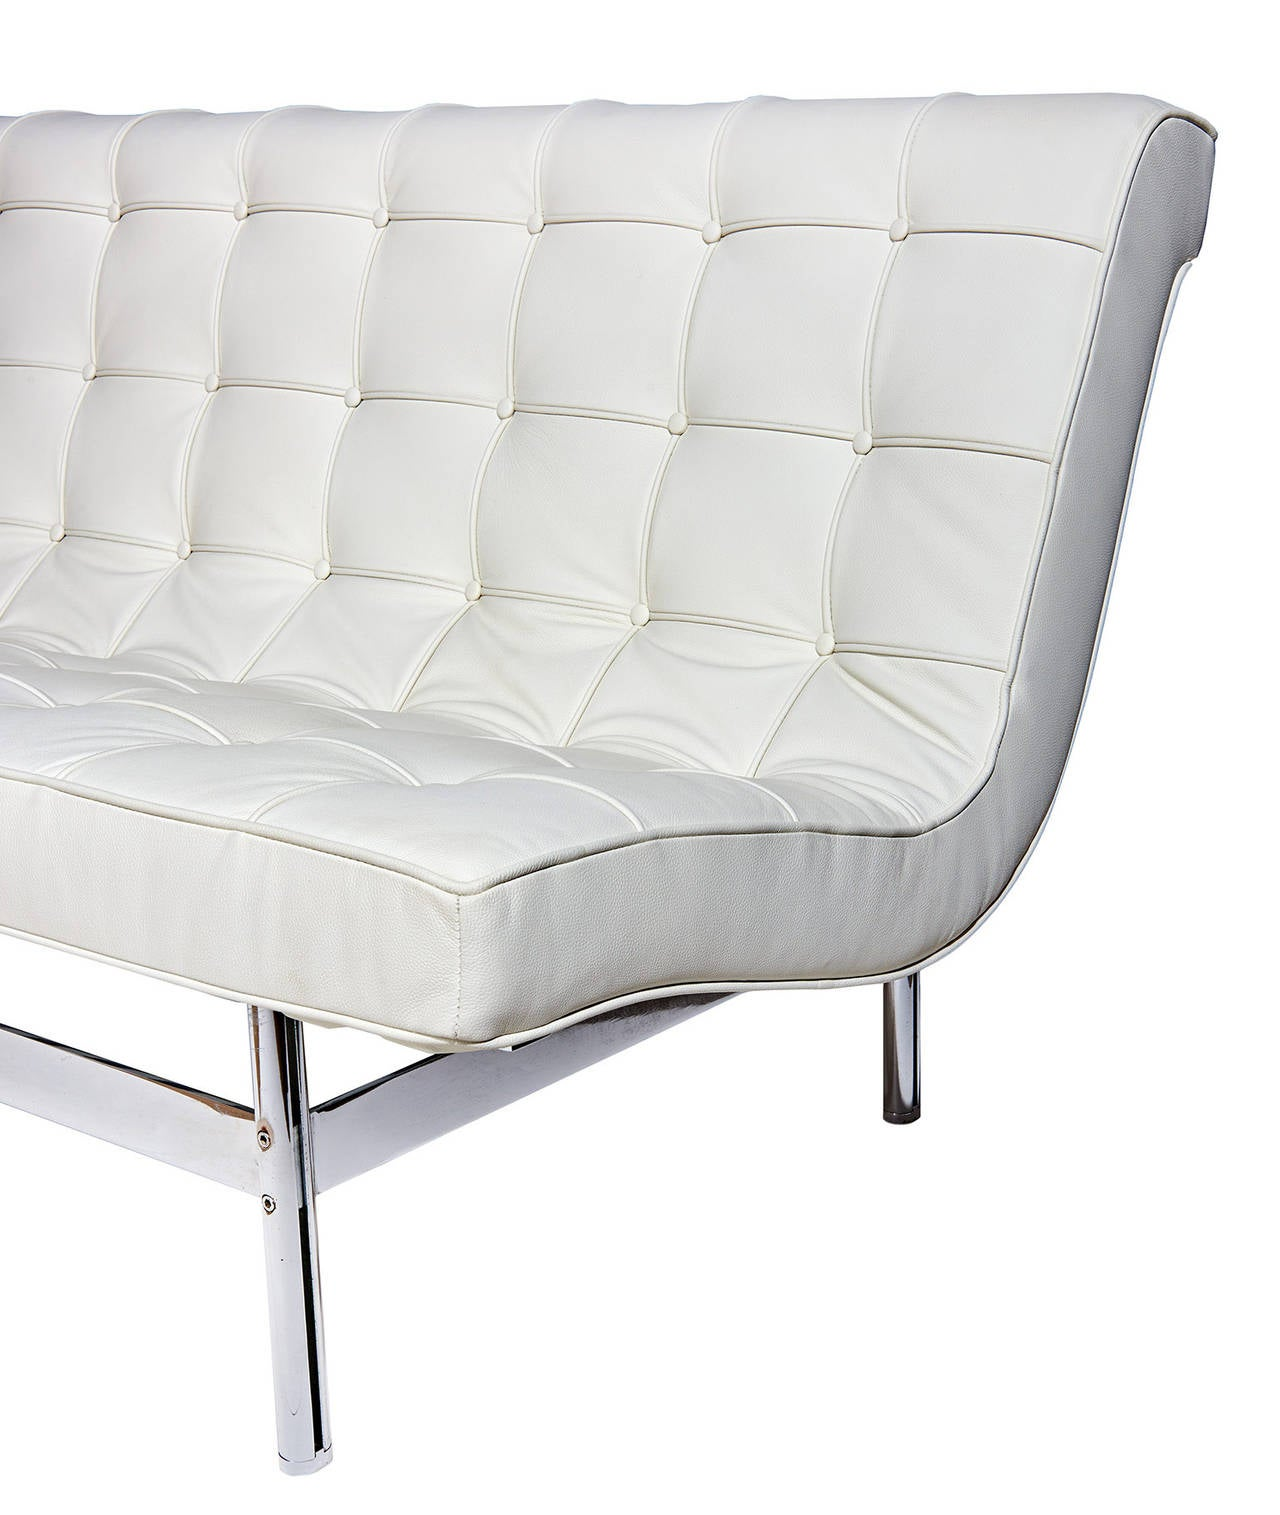 """New York"" Sofa by Katavolos, Littell and Kelley for Laverne 5"